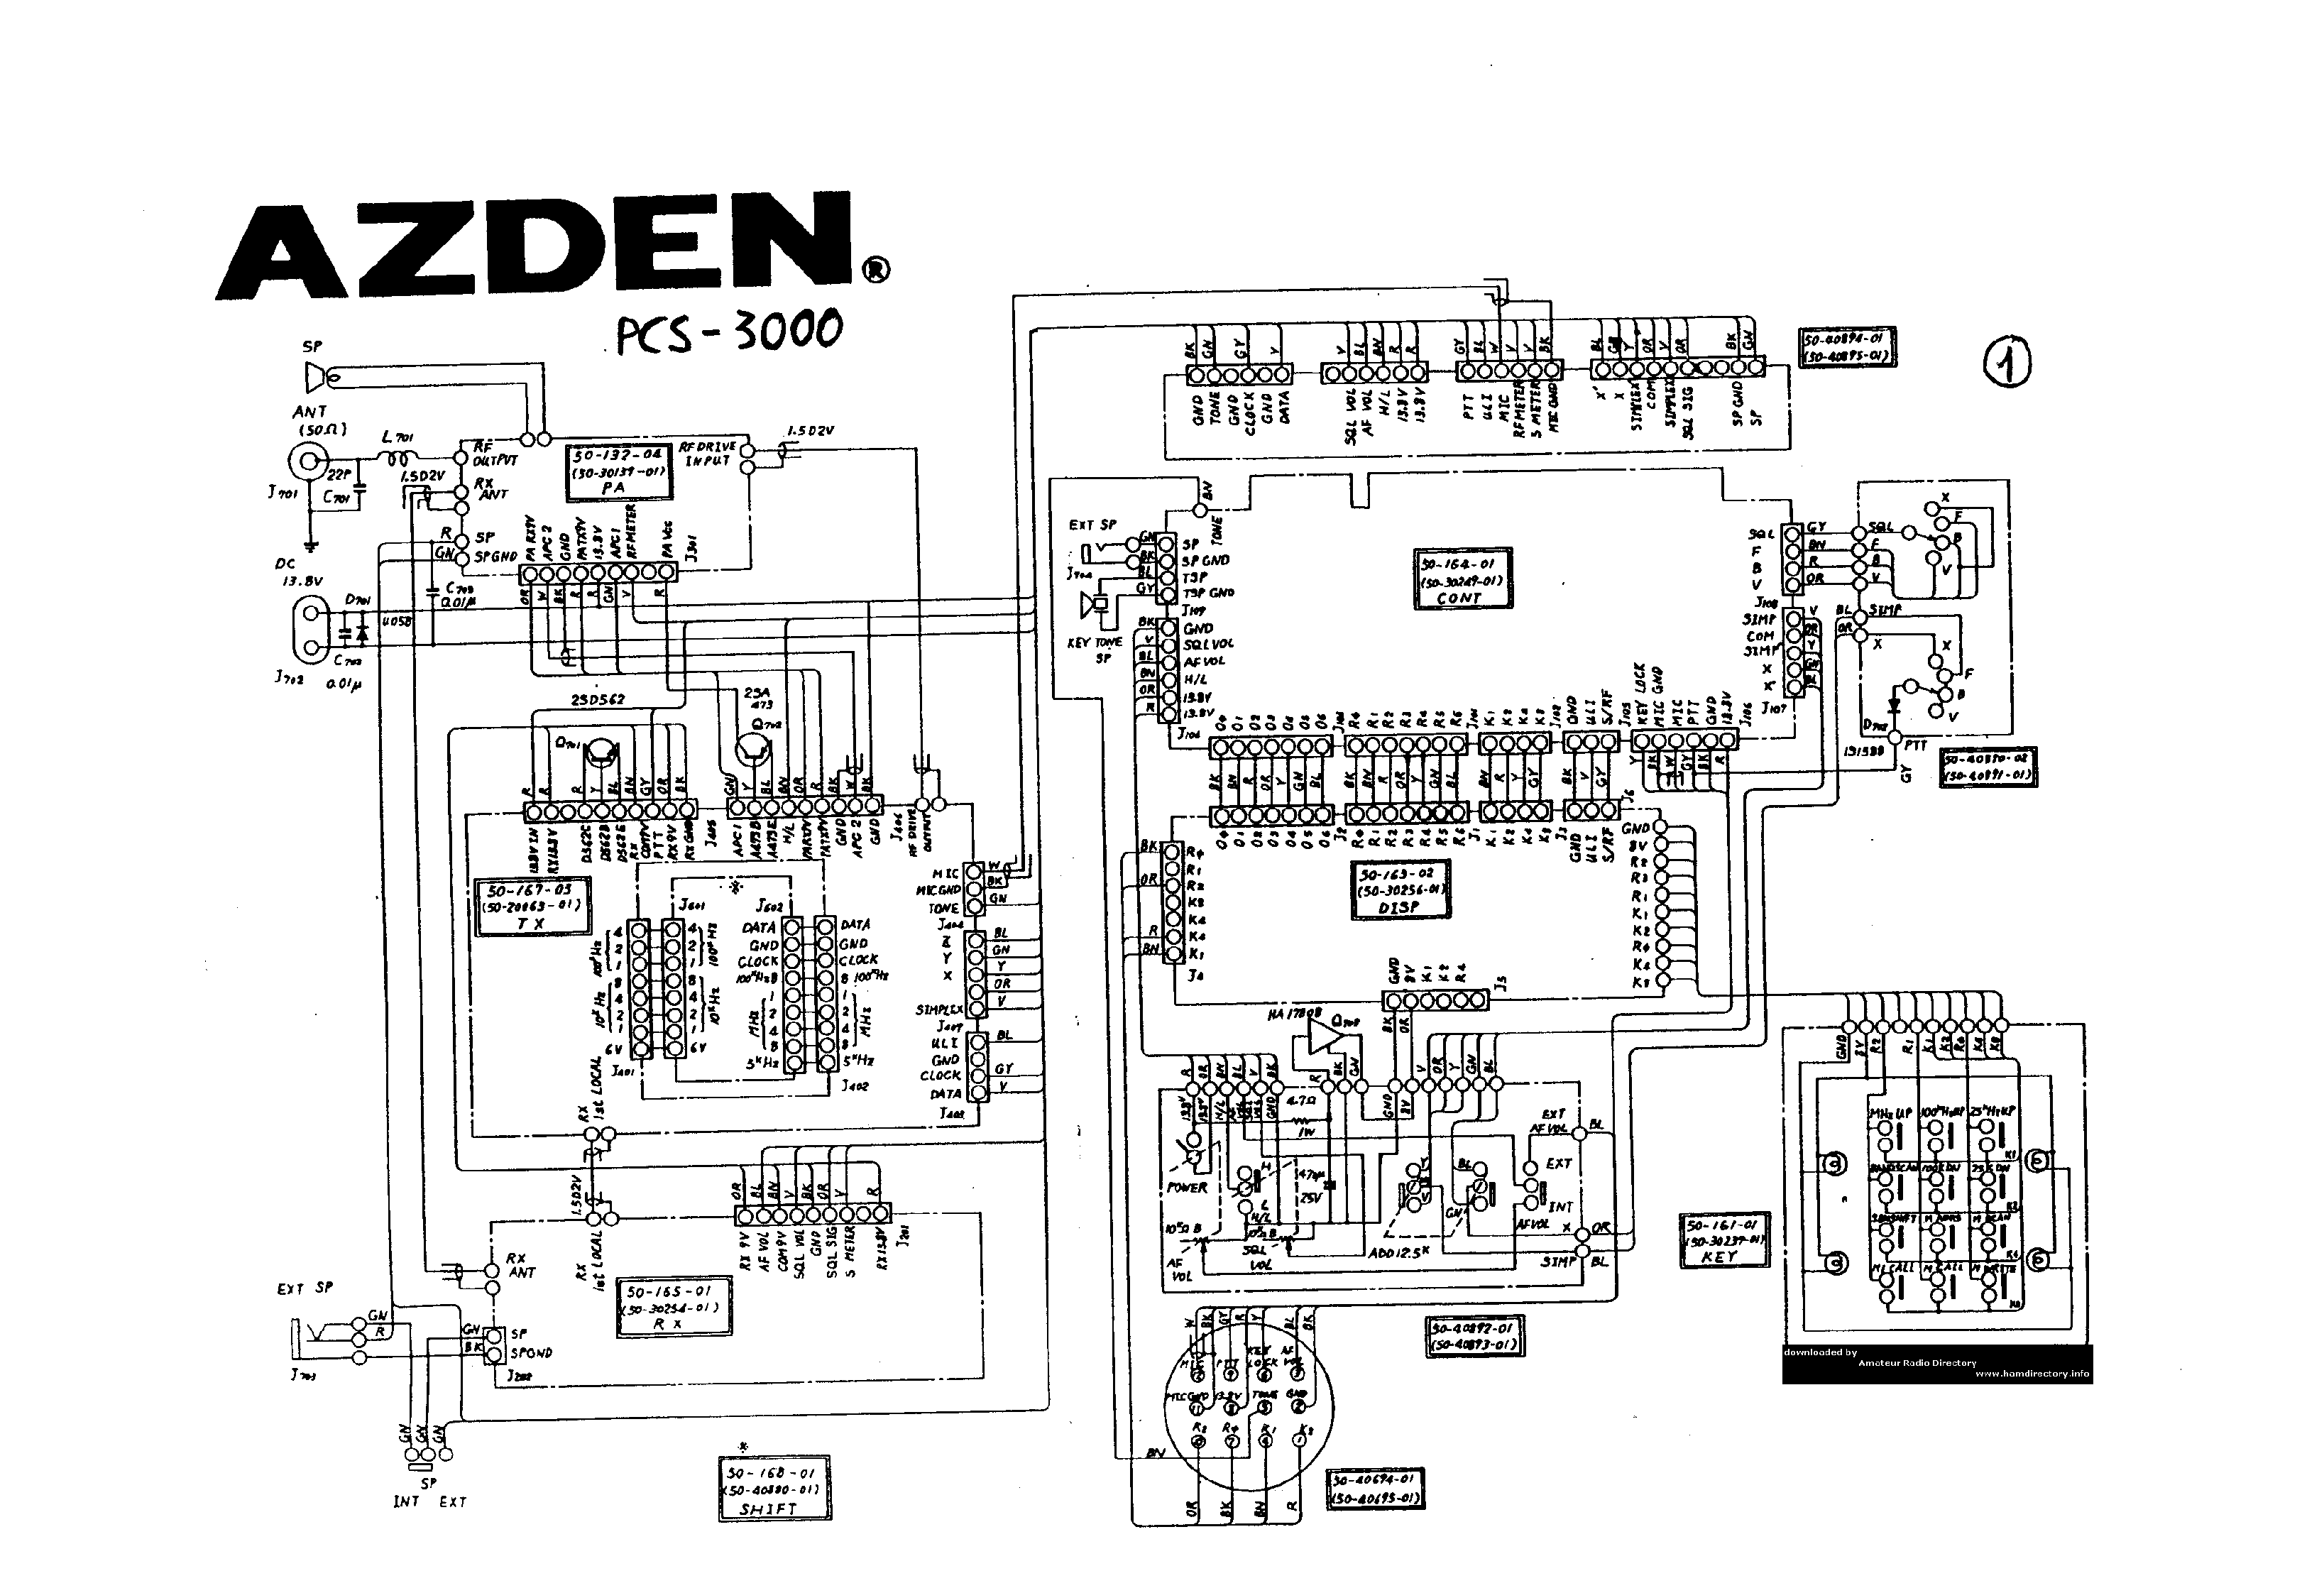 AZDEN PCS-3000 service manual